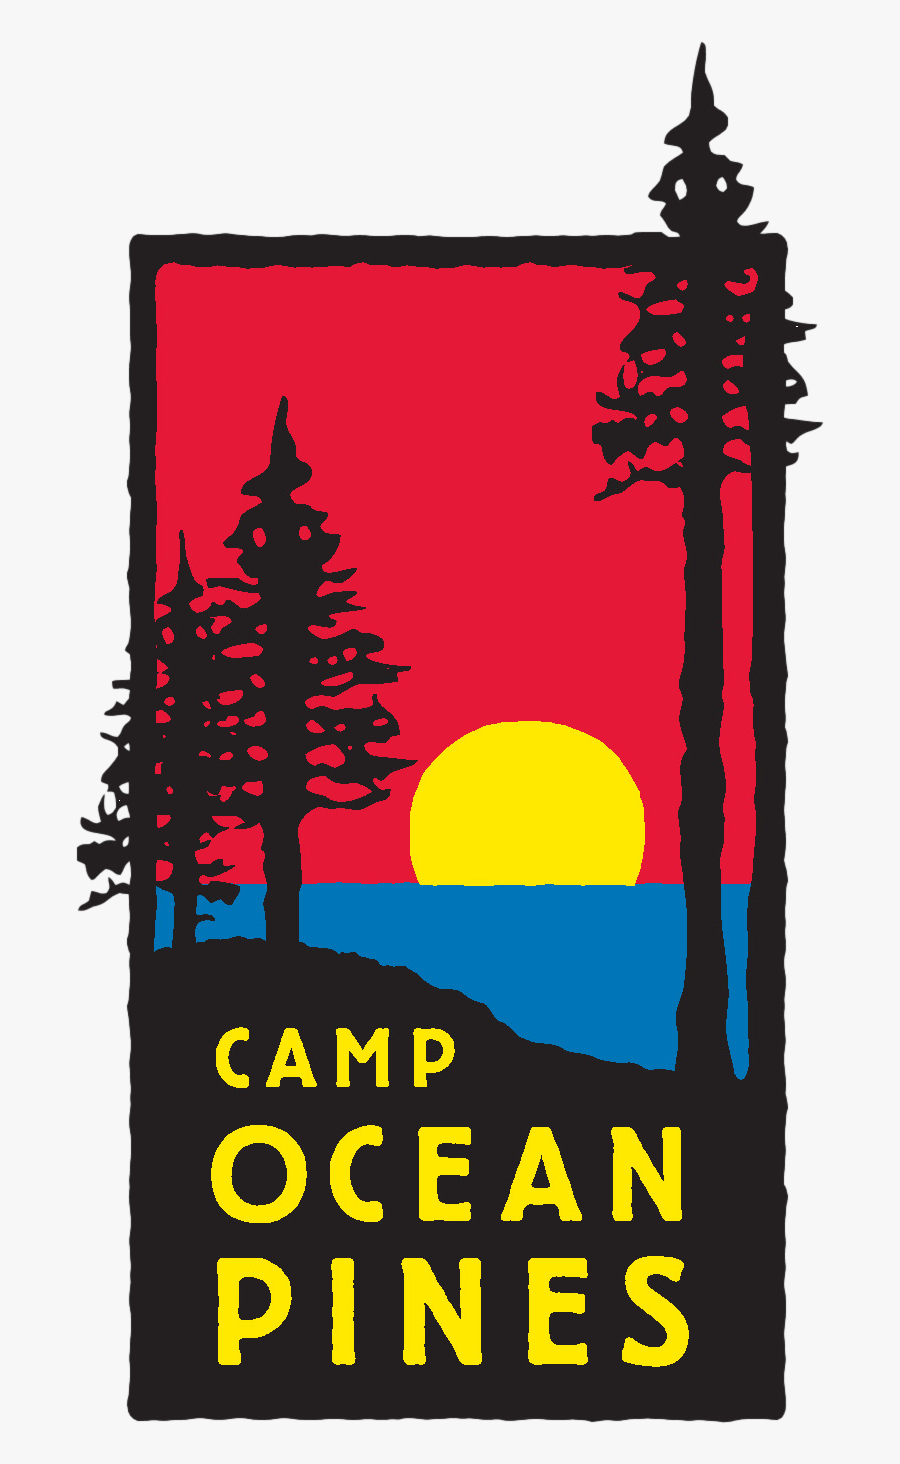 Cabin Clipart School Camp - Camp Ocean Pines, Transparent Clipart